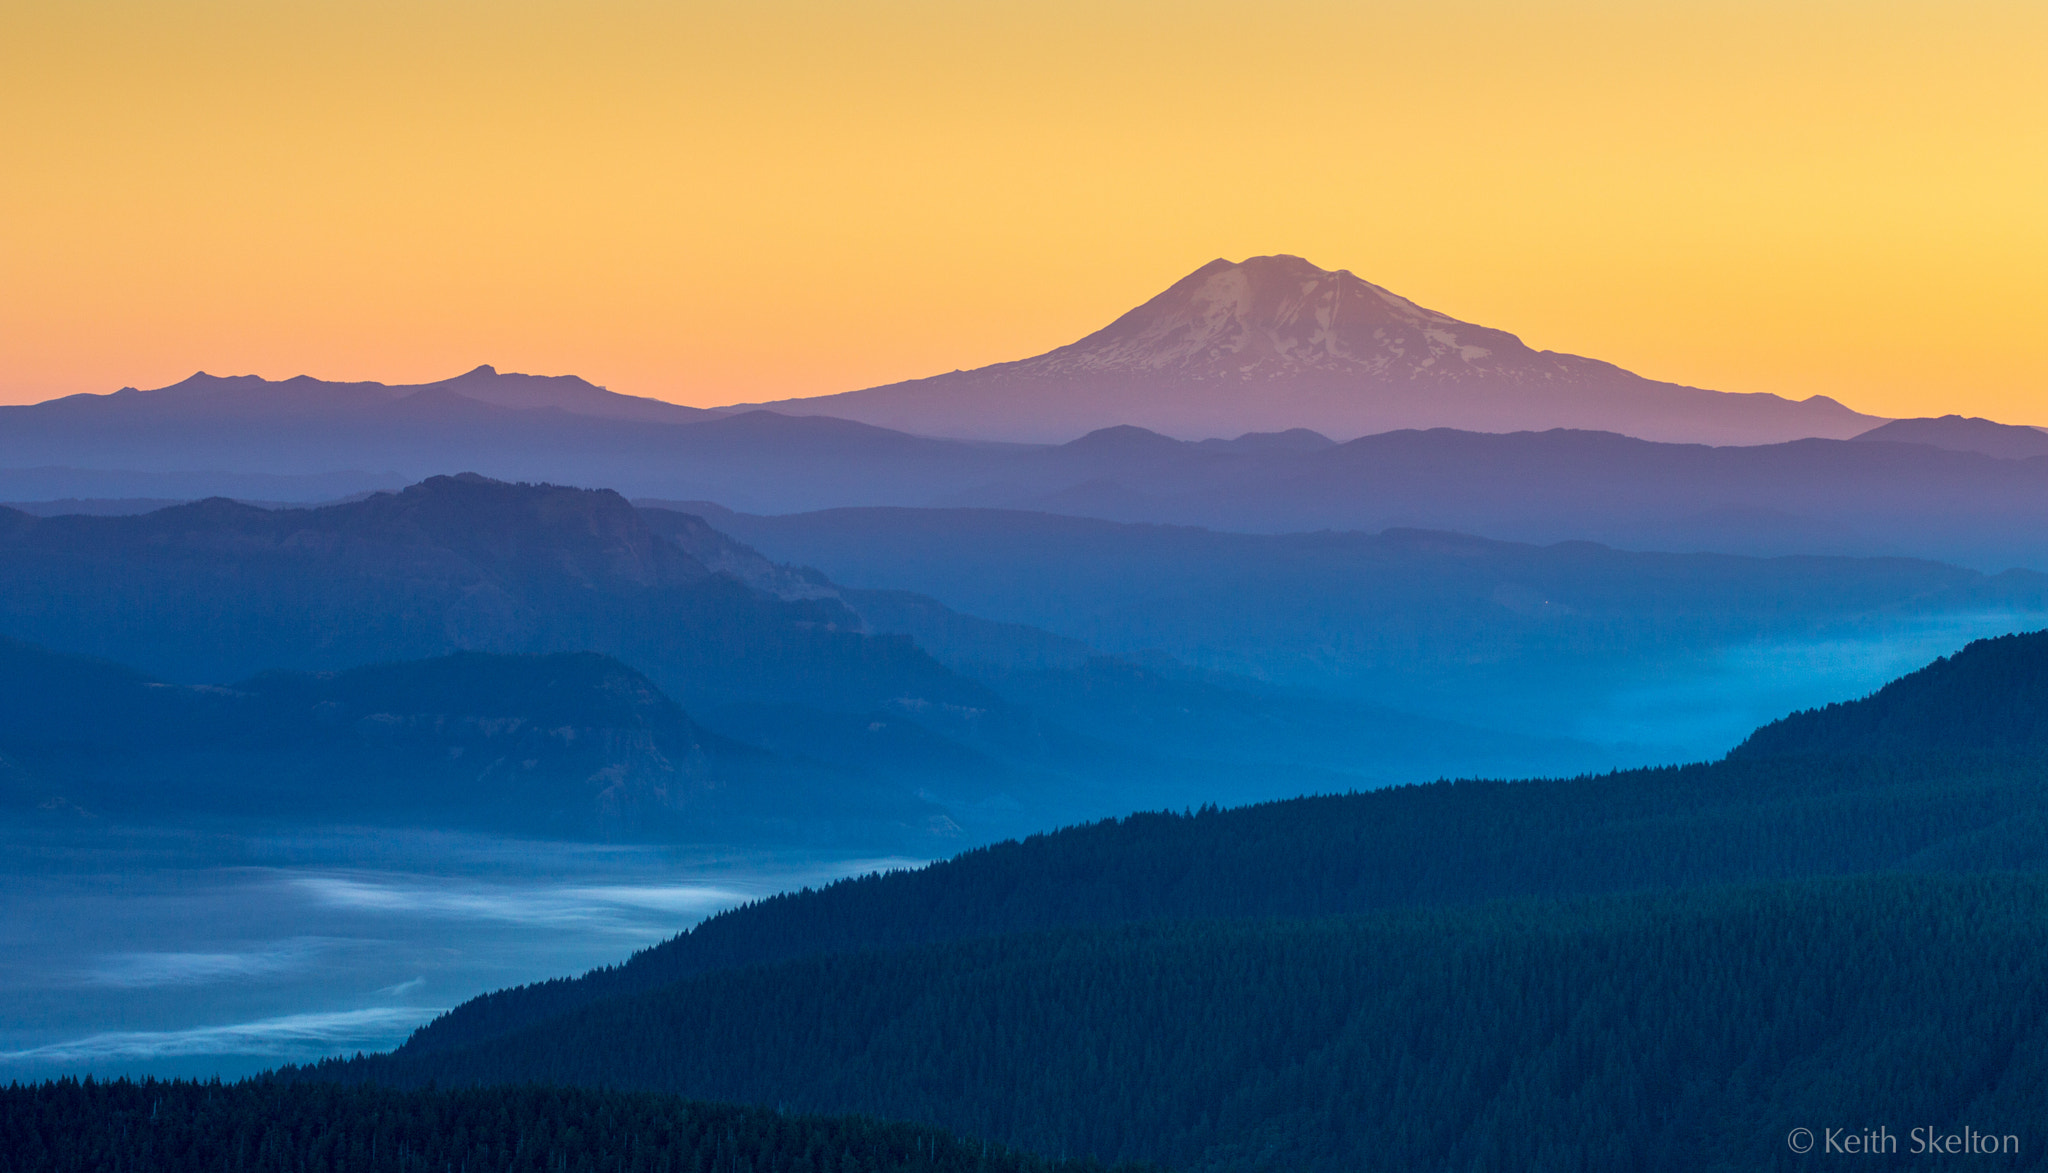 Photograph Mt. Adams and the Columbia Gorge by Keith Skelton on 500px